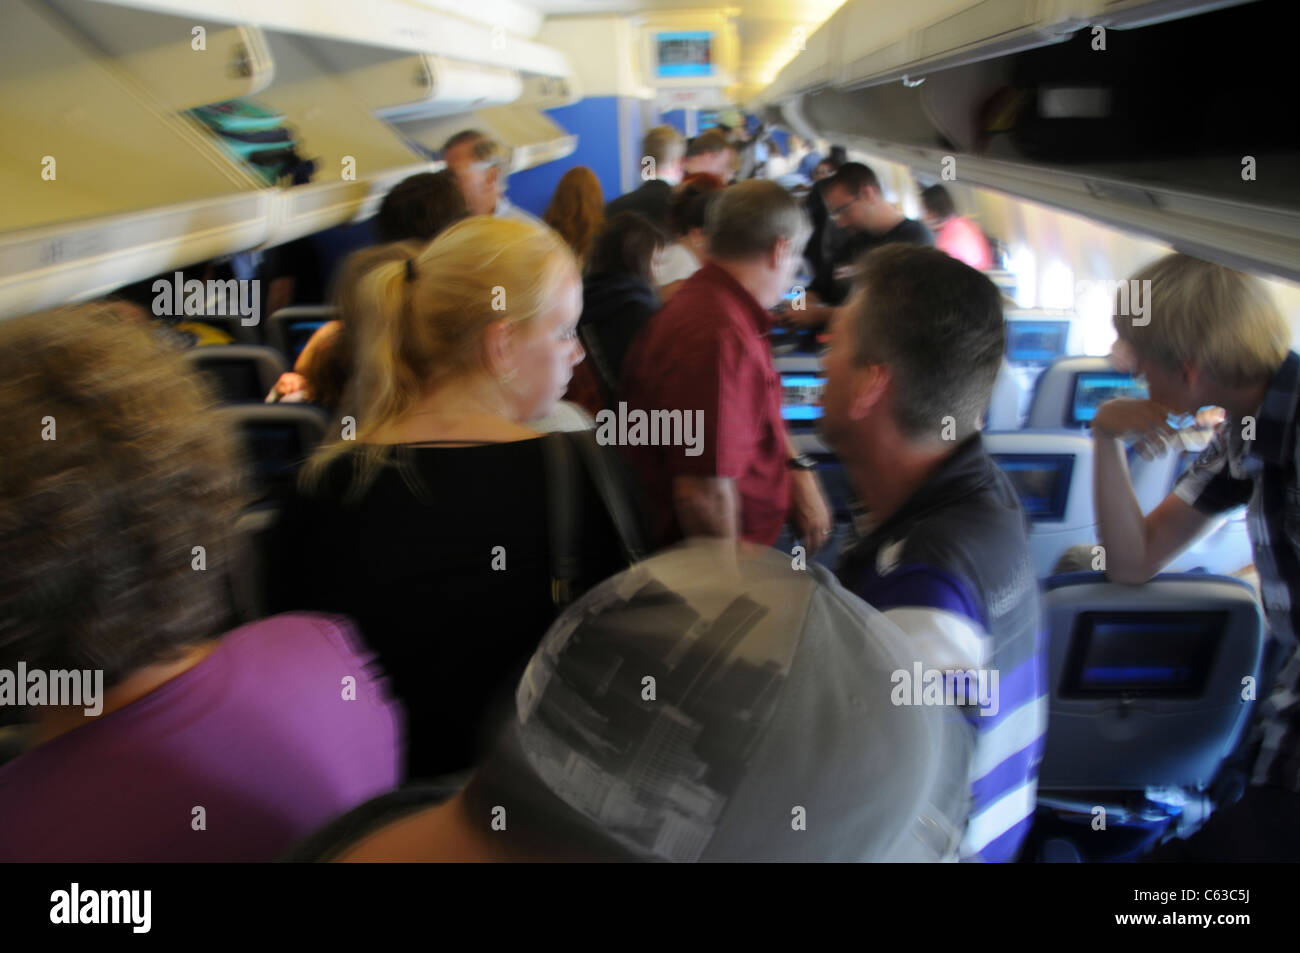 Air passengers placing or removing carry on luggage from overhead compartments - Stock Image